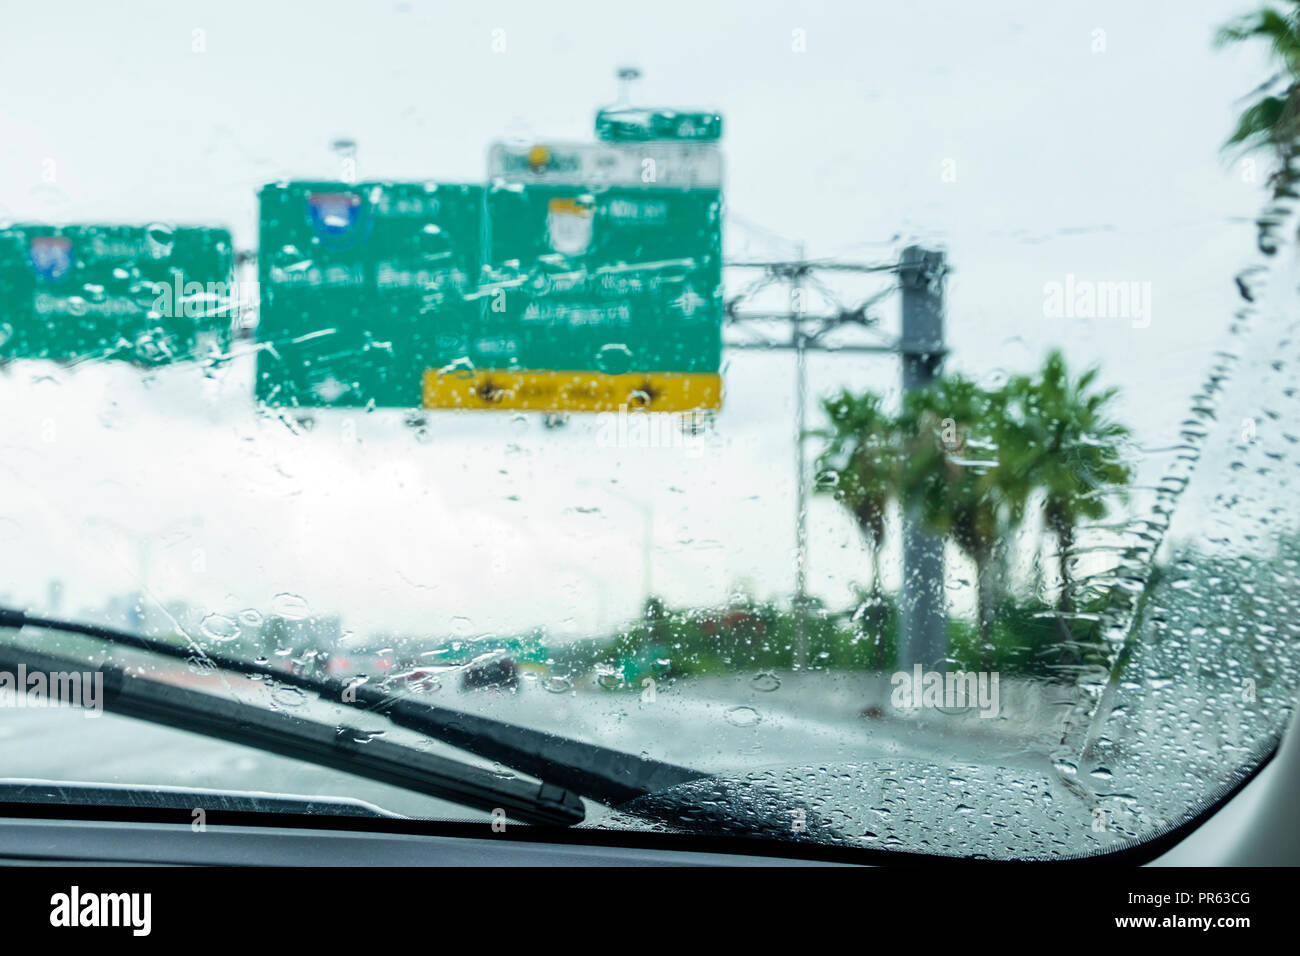 Miami Florida Palmetto Expressway driving rain rainy raining automobile car window windshield view highway interstate - Stock Image